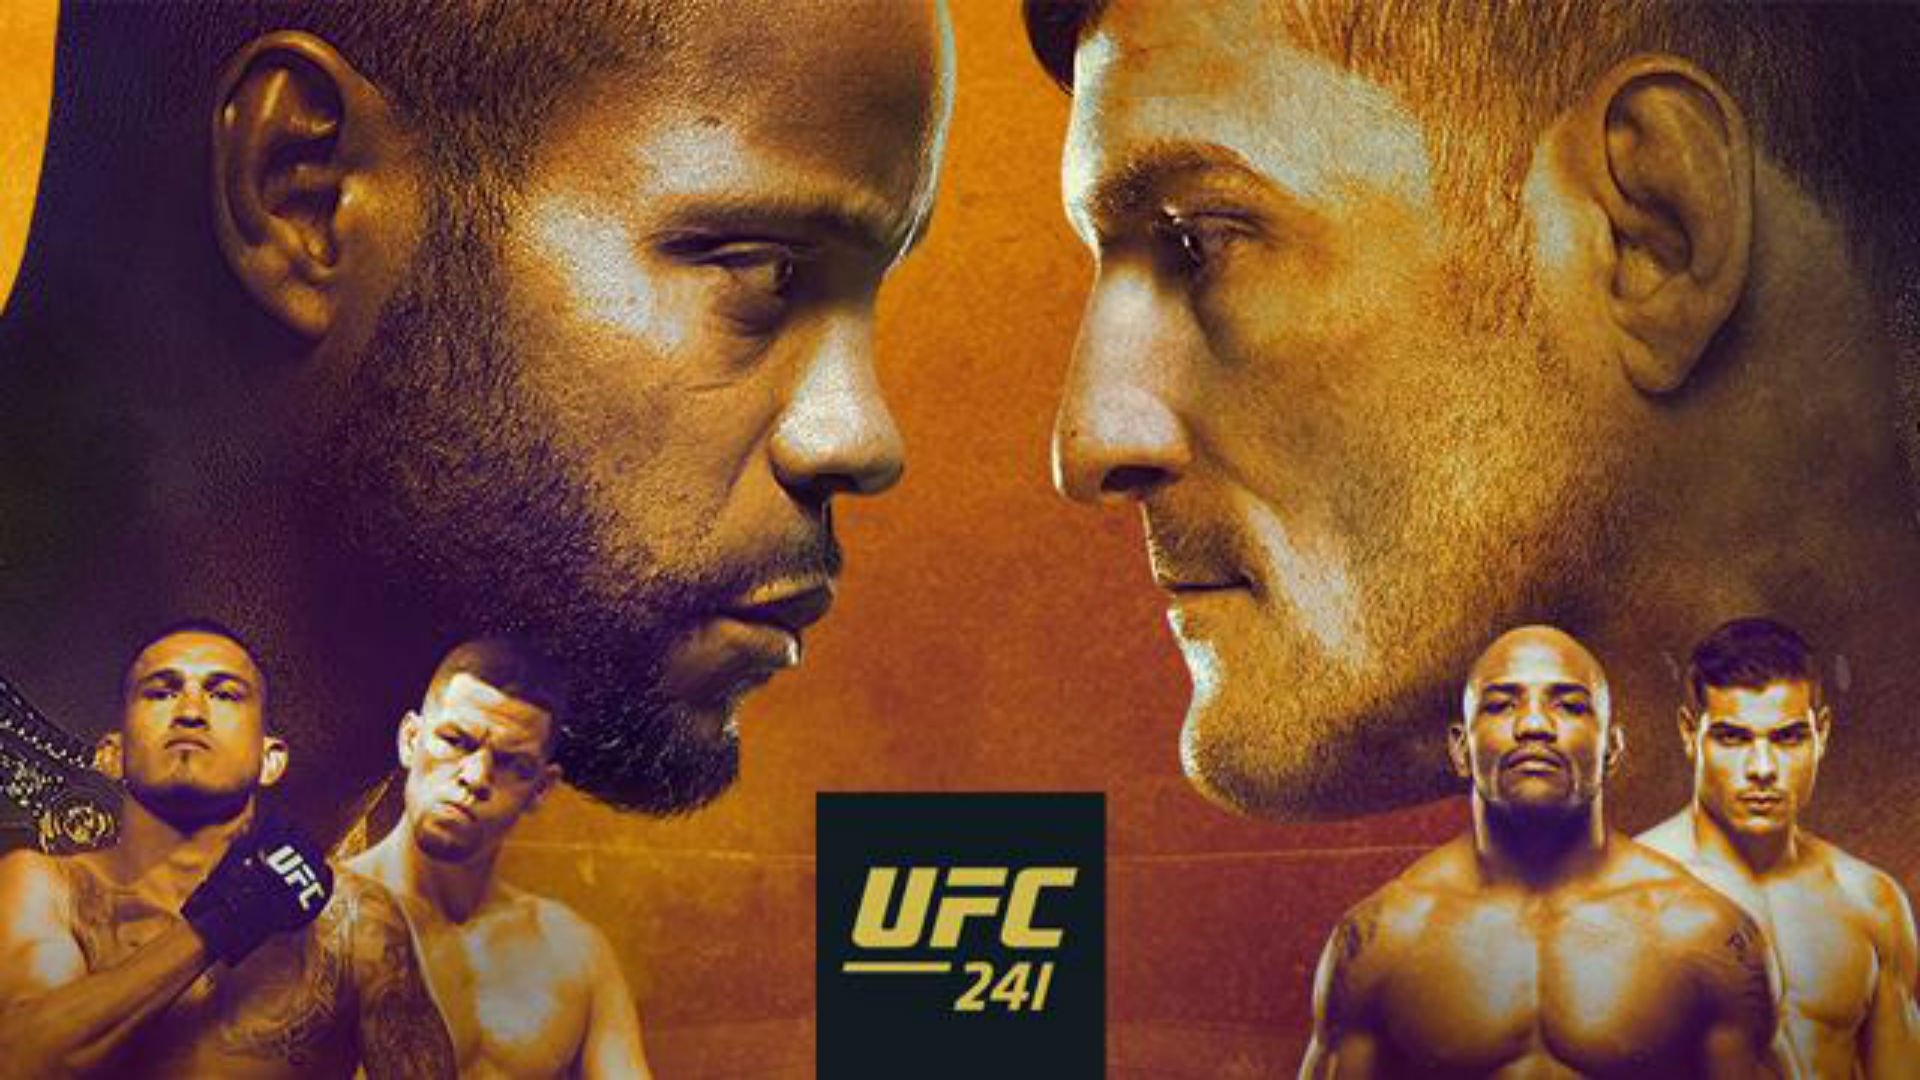 UFC-241-main-card-breakdown-and-predictions